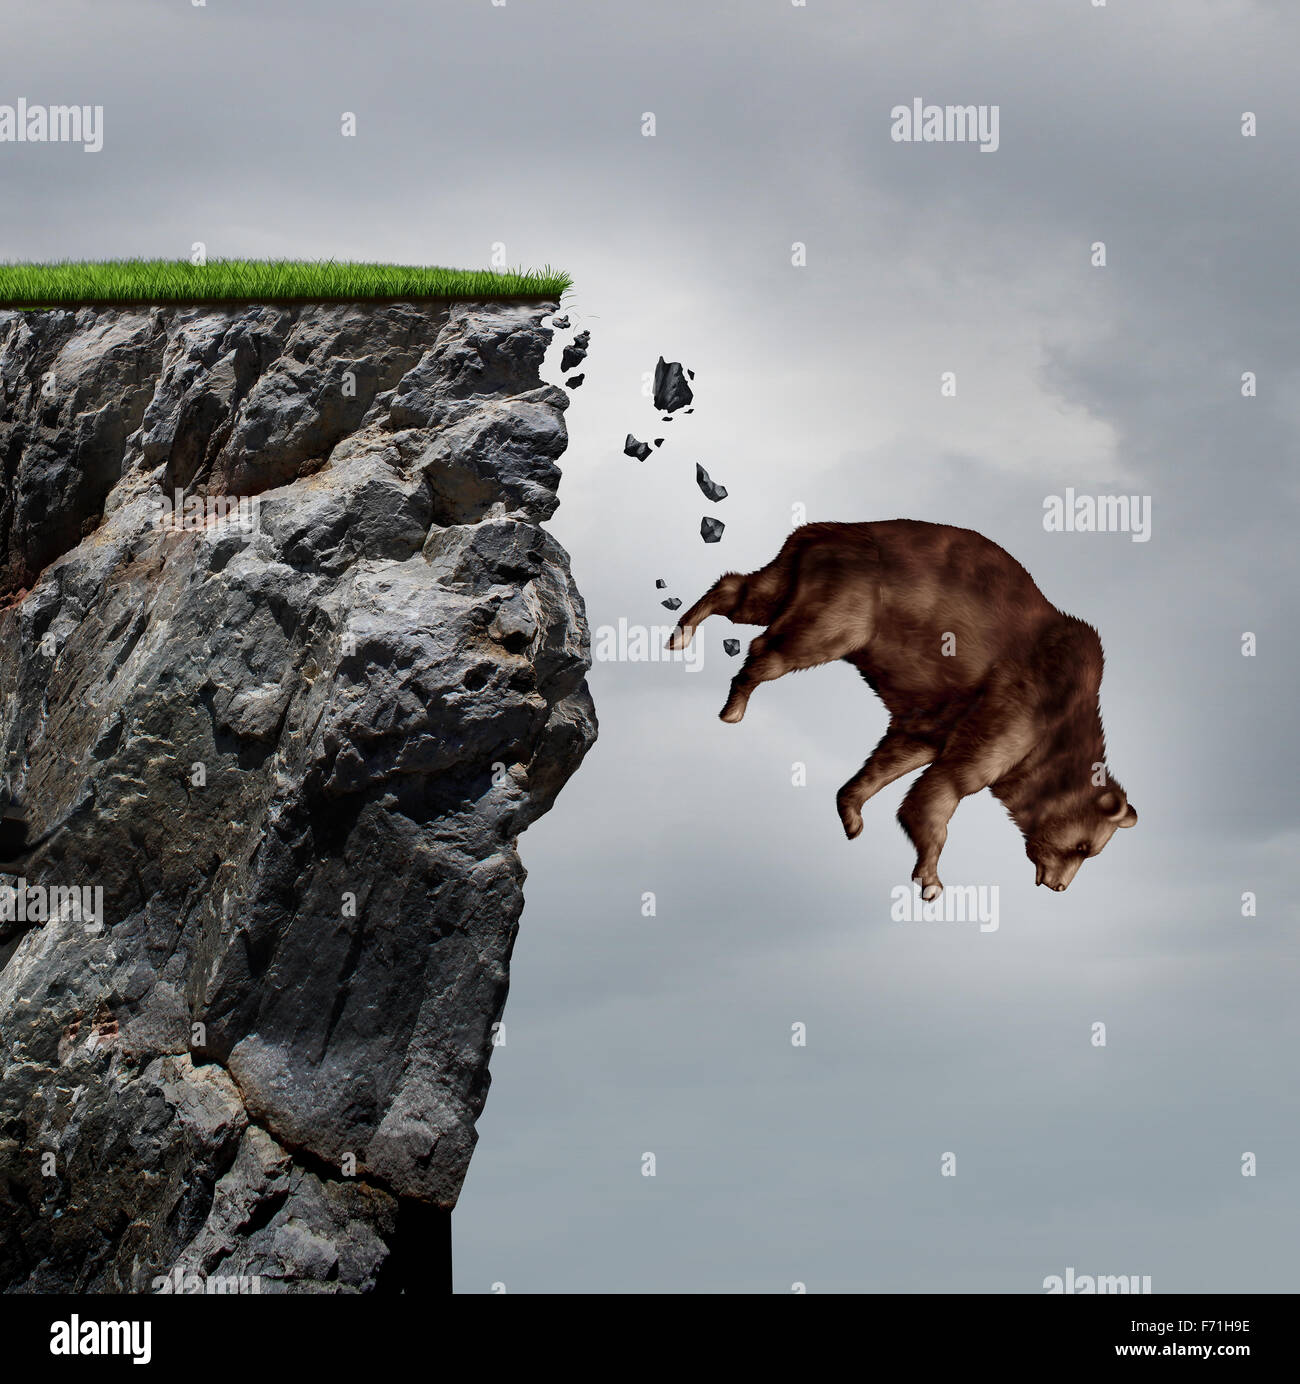 Falling bear market financial decline business and plummeting finance concept for losing investment and value taking Stock Photo